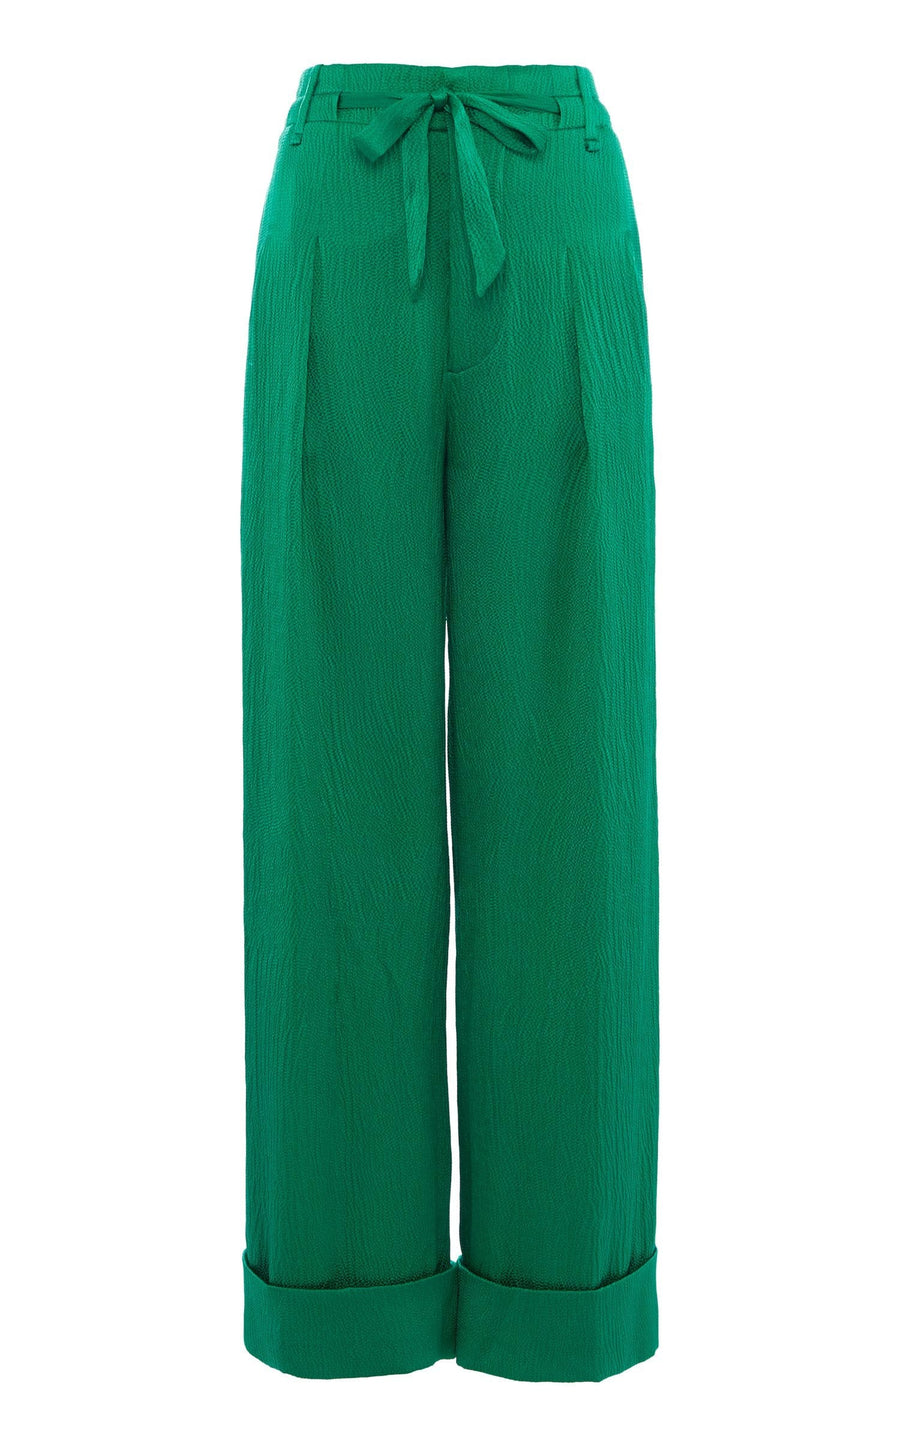 Perkins Trouser